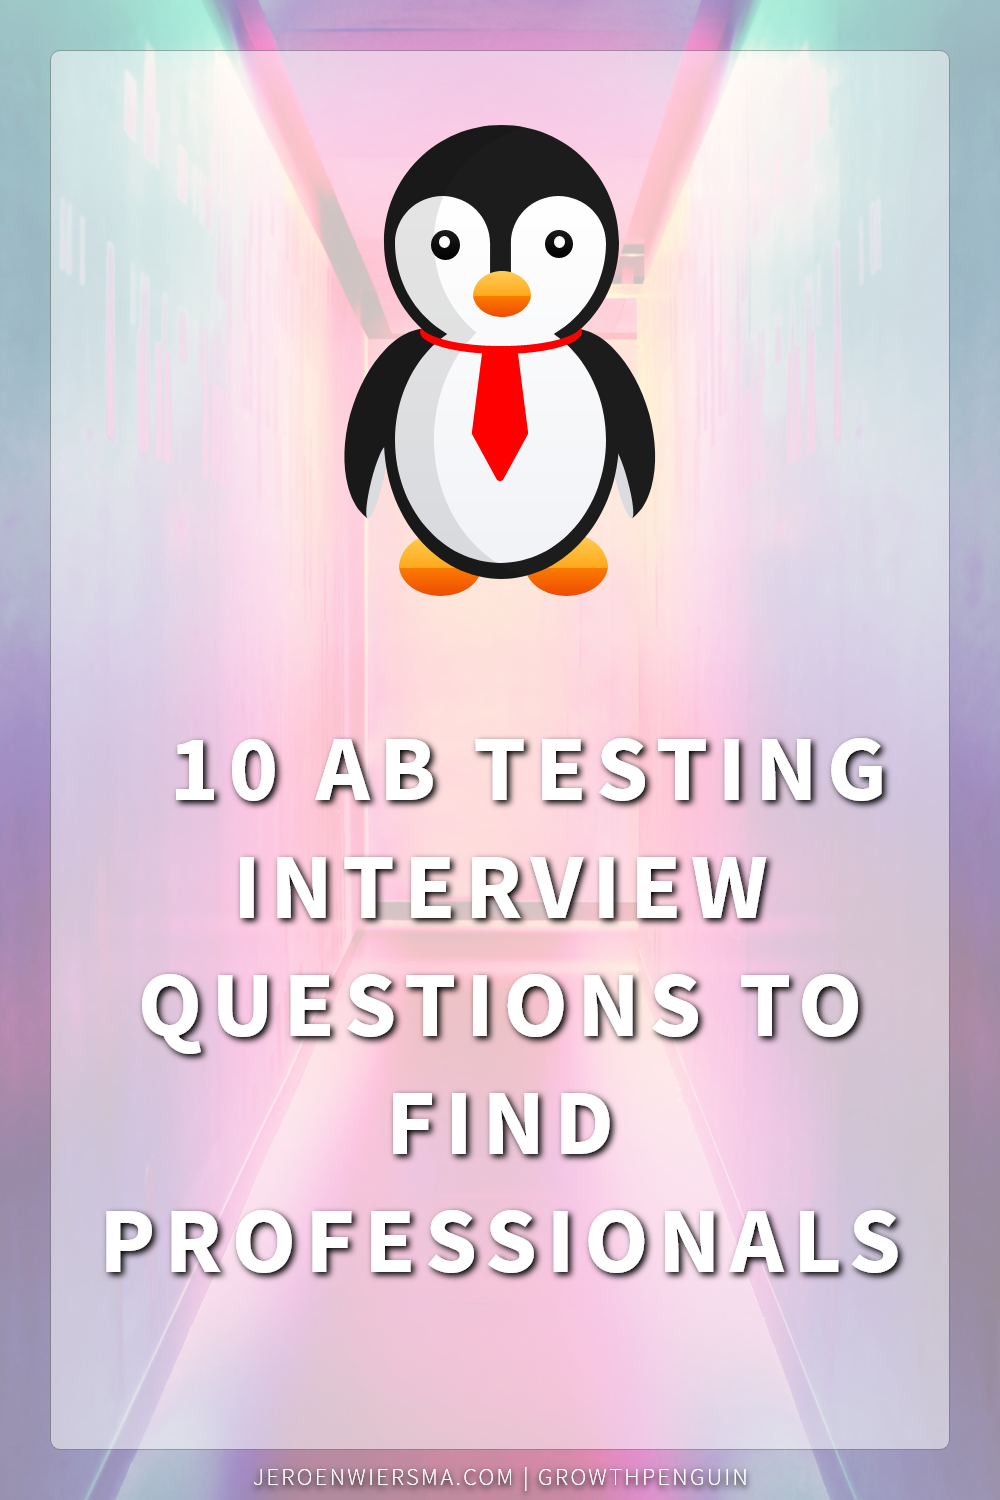 10 ab testing interview questions to find professionals